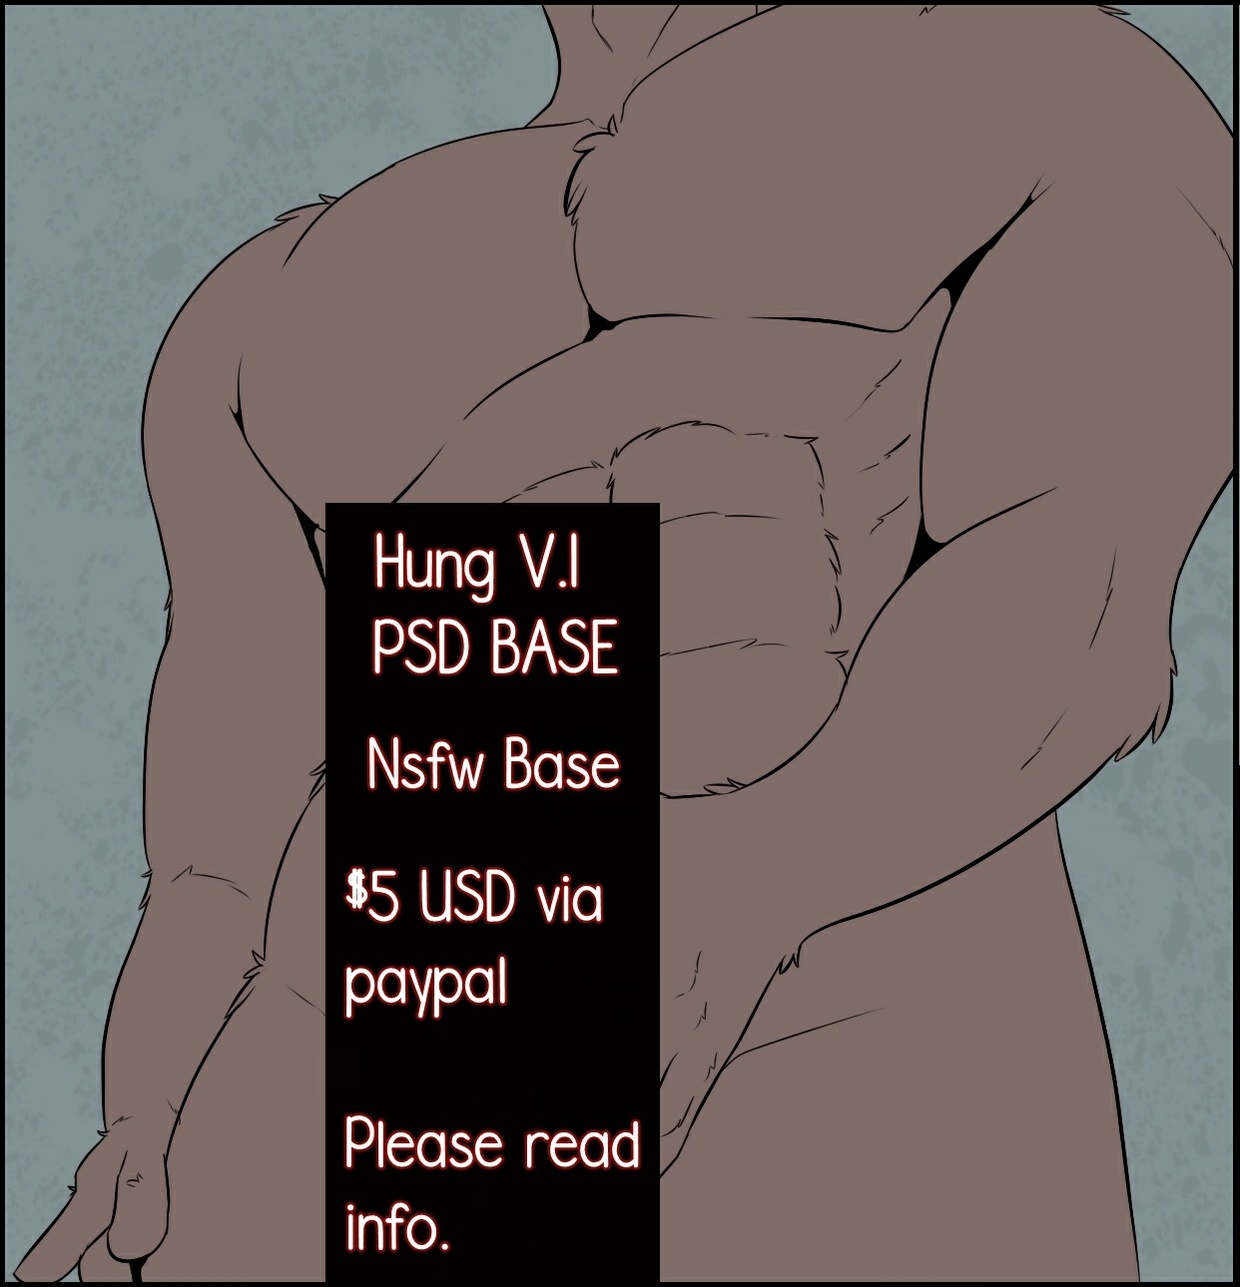 """Hung"" V.1 PSD Base"